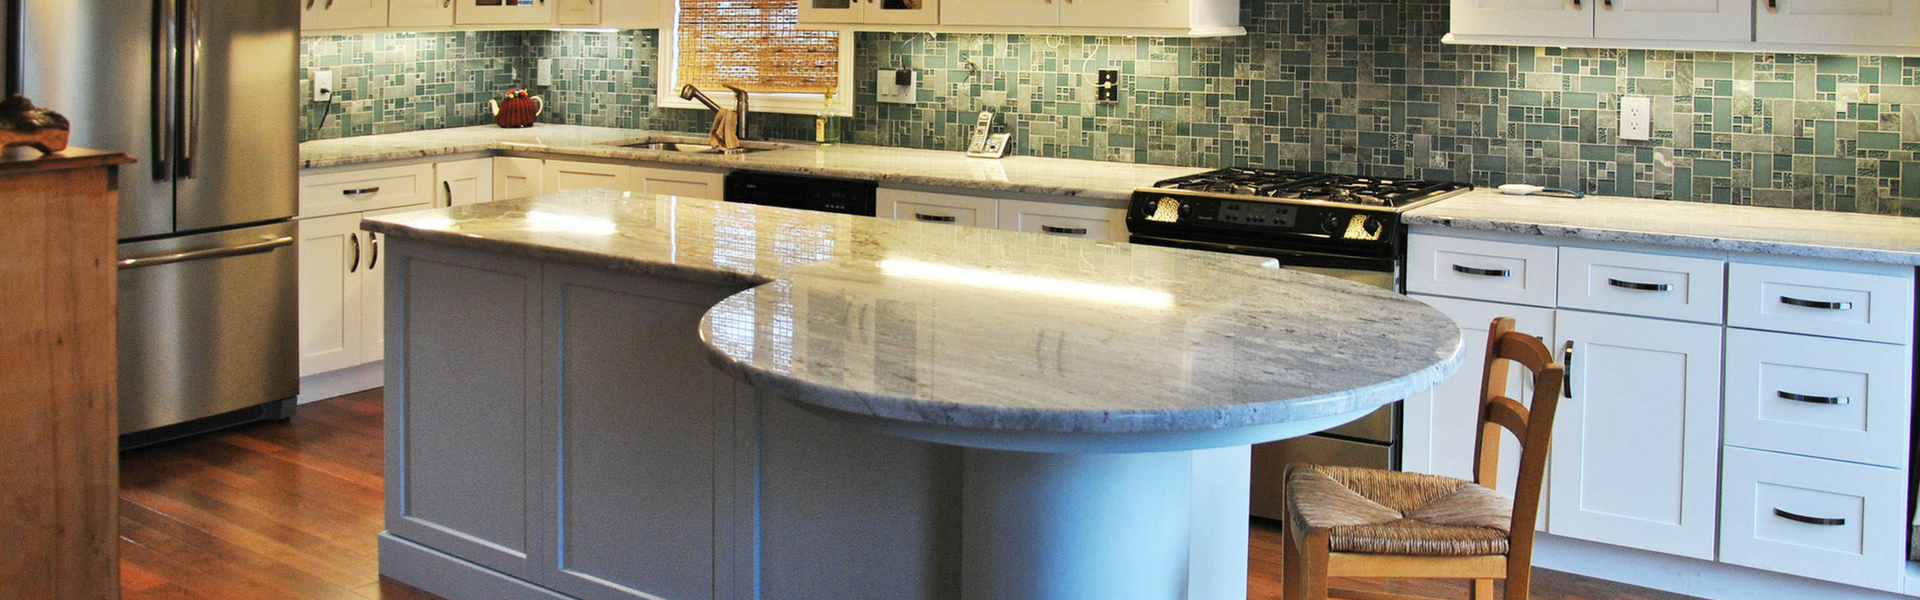 Countertop page banner